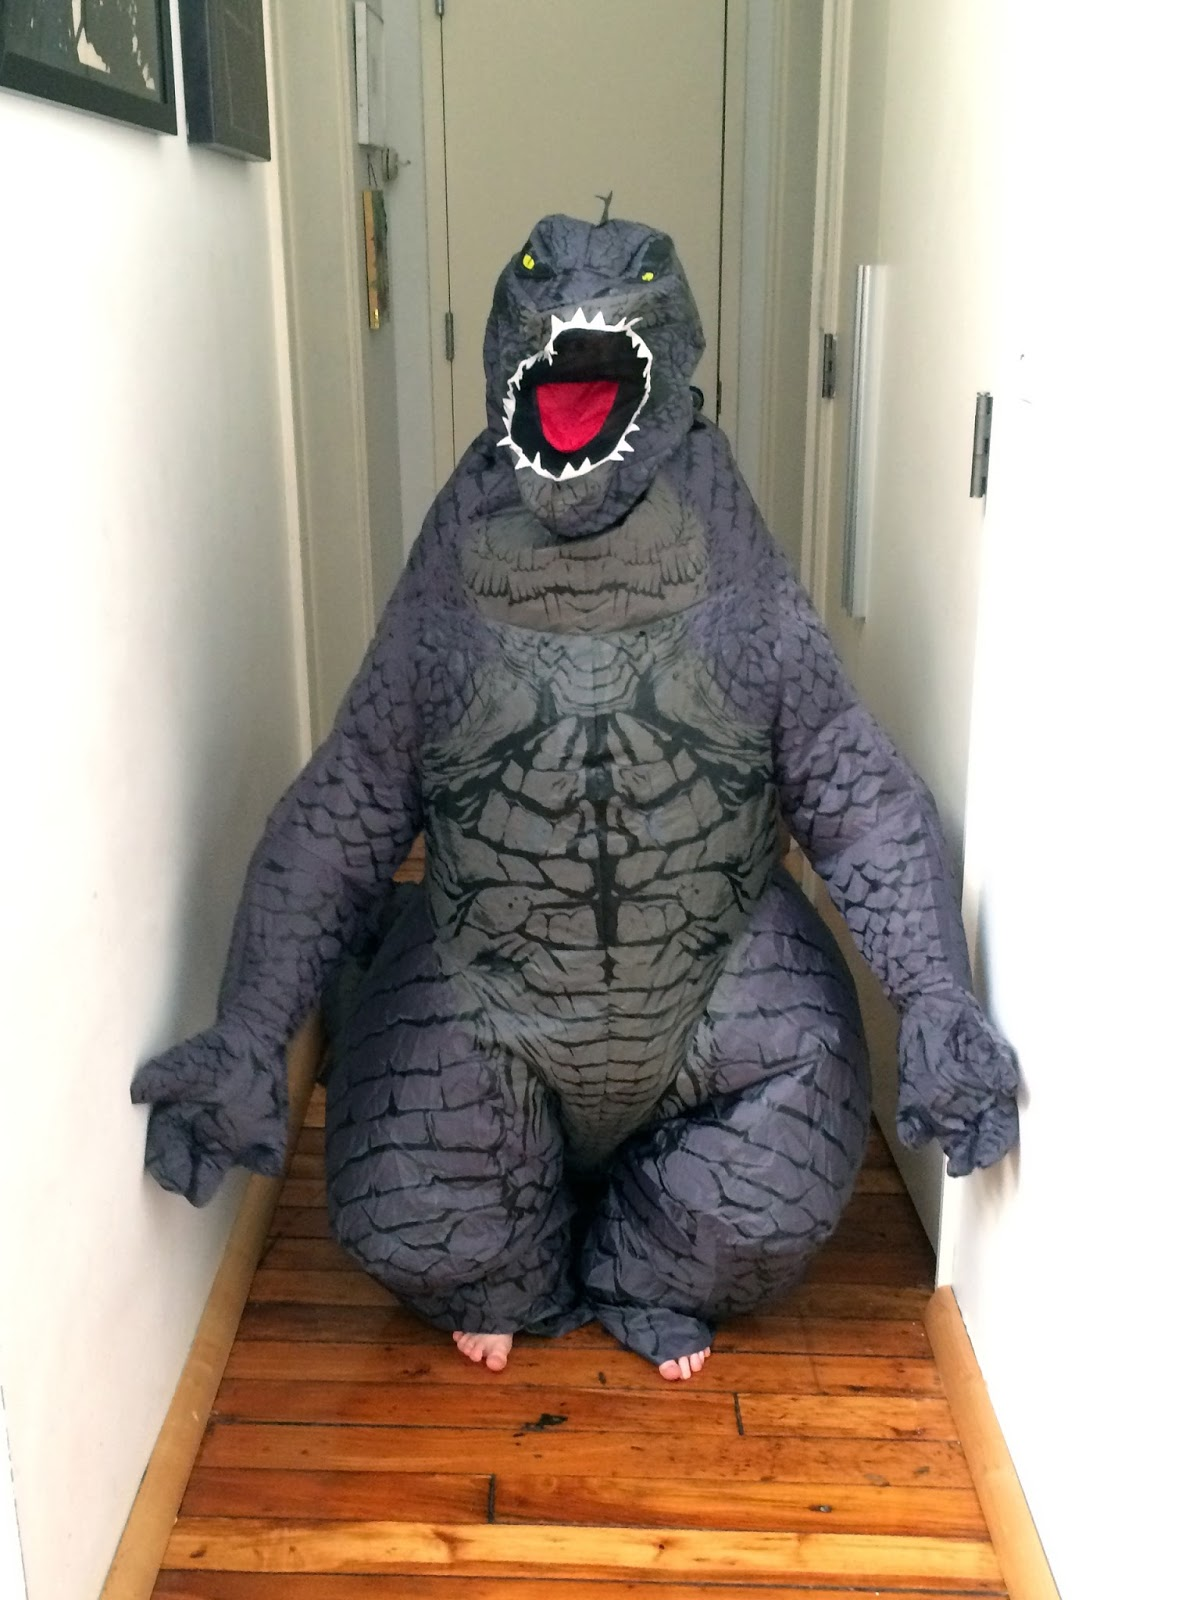 to width ratio is even more un godzilla like but i am so amused by the tiny human toes peaking out of the feet that i could not resist including it